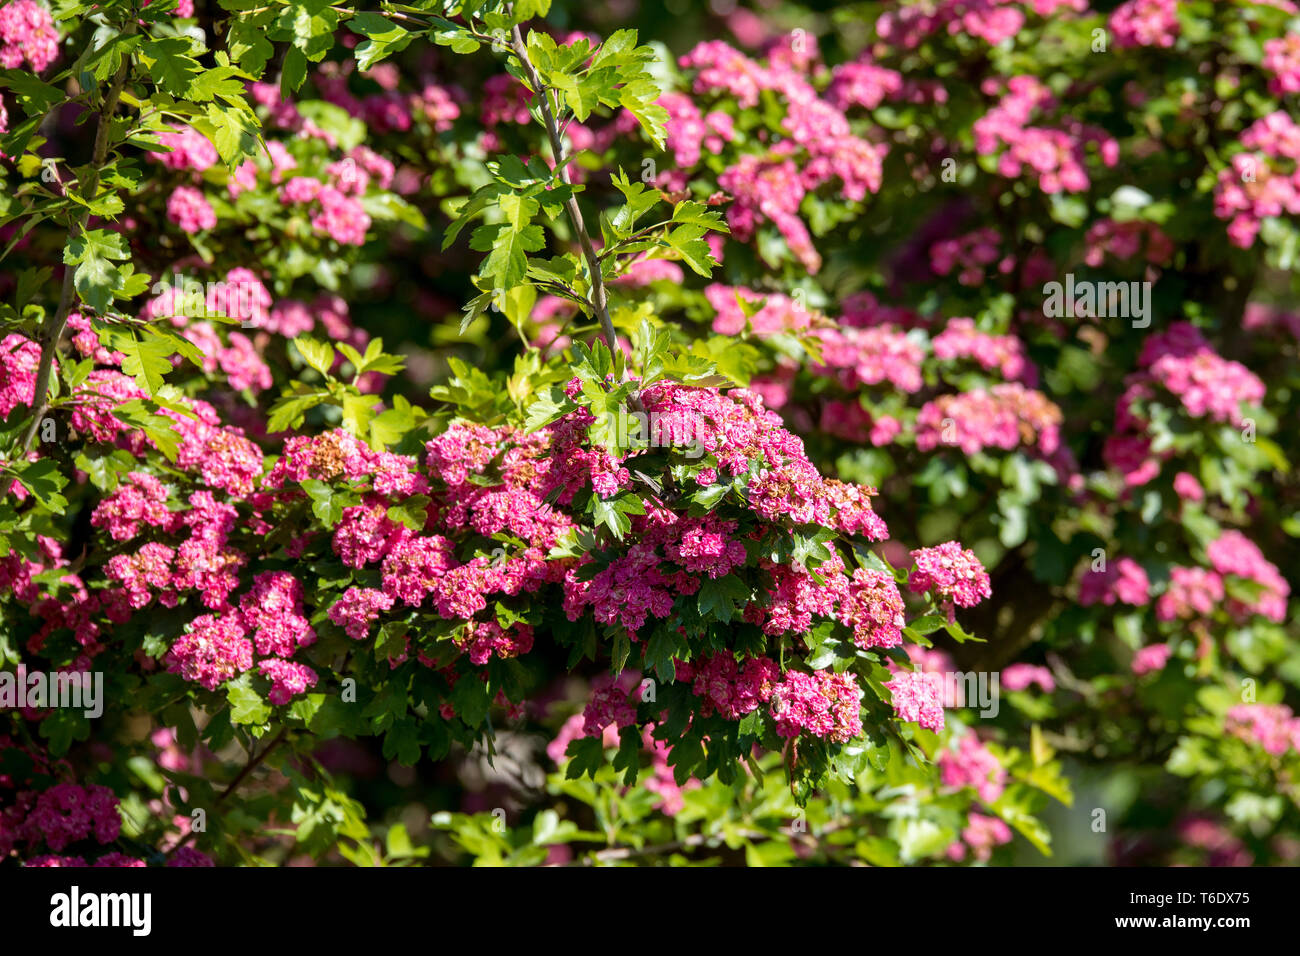 Pink flowers hawthorn tree - Stock Image